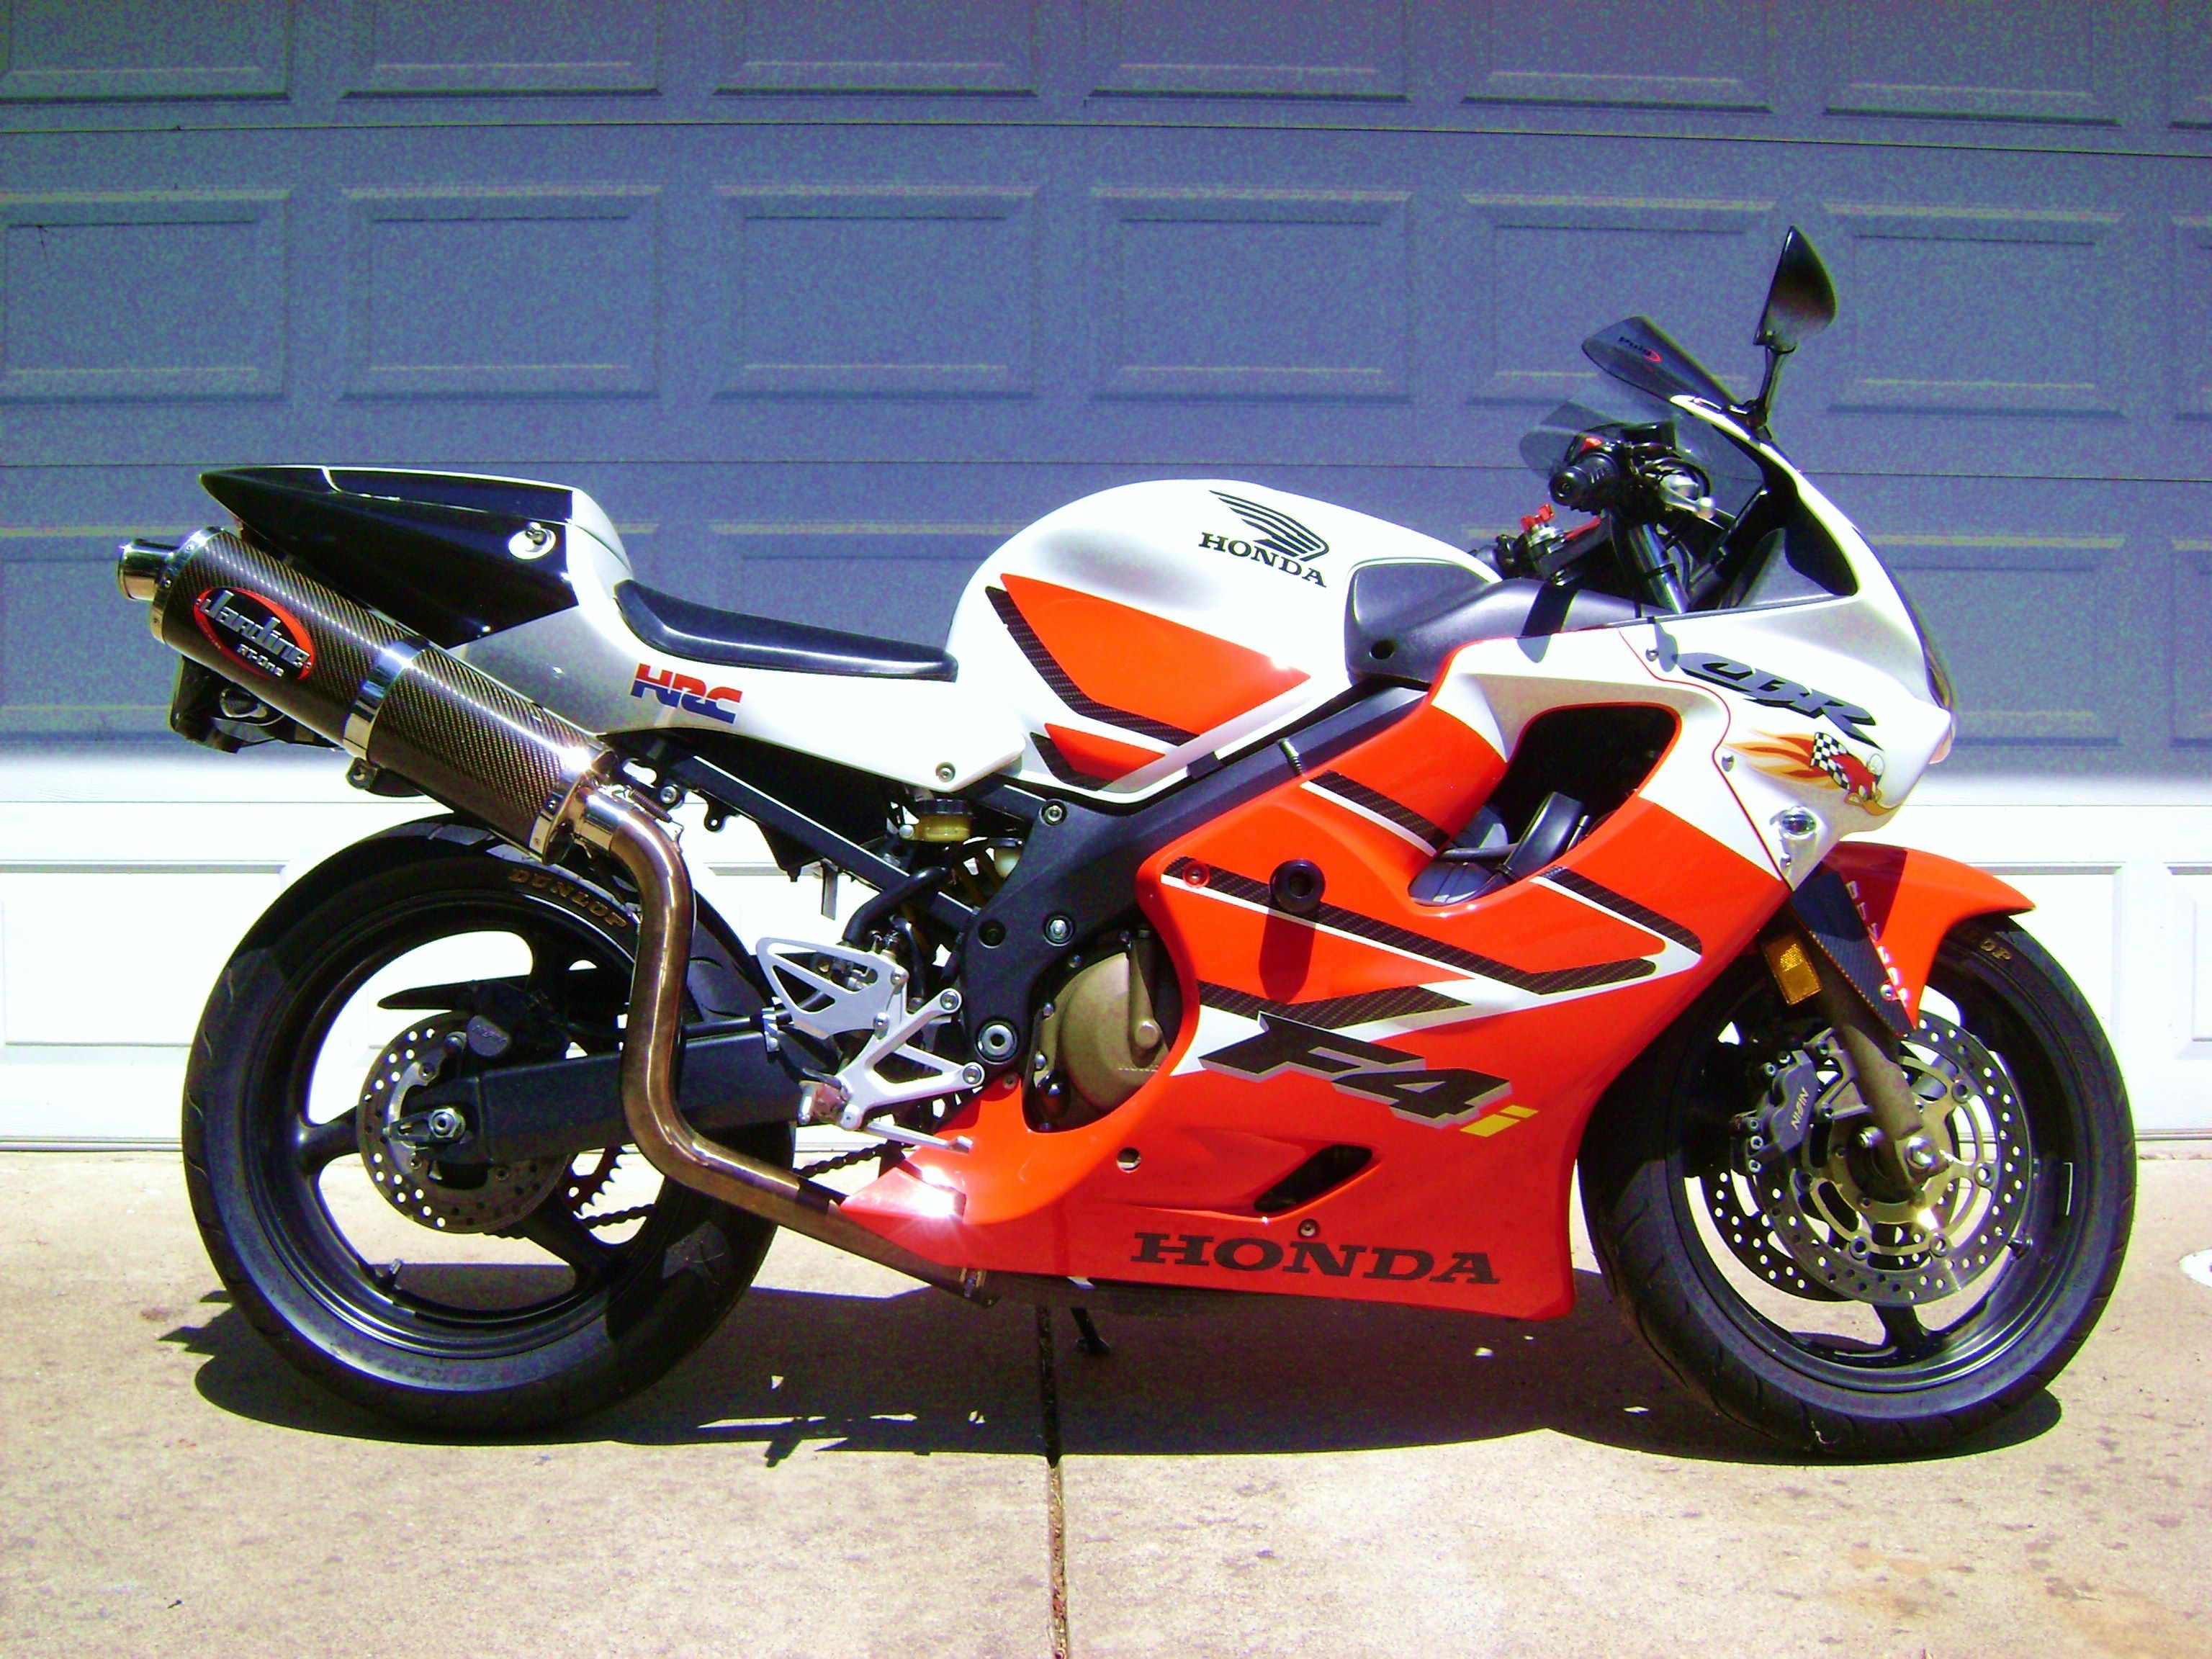 my 2002 cbr 600 f4i honda cbr 600 cbr 600 honda. Black Bedroom Furniture Sets. Home Design Ideas